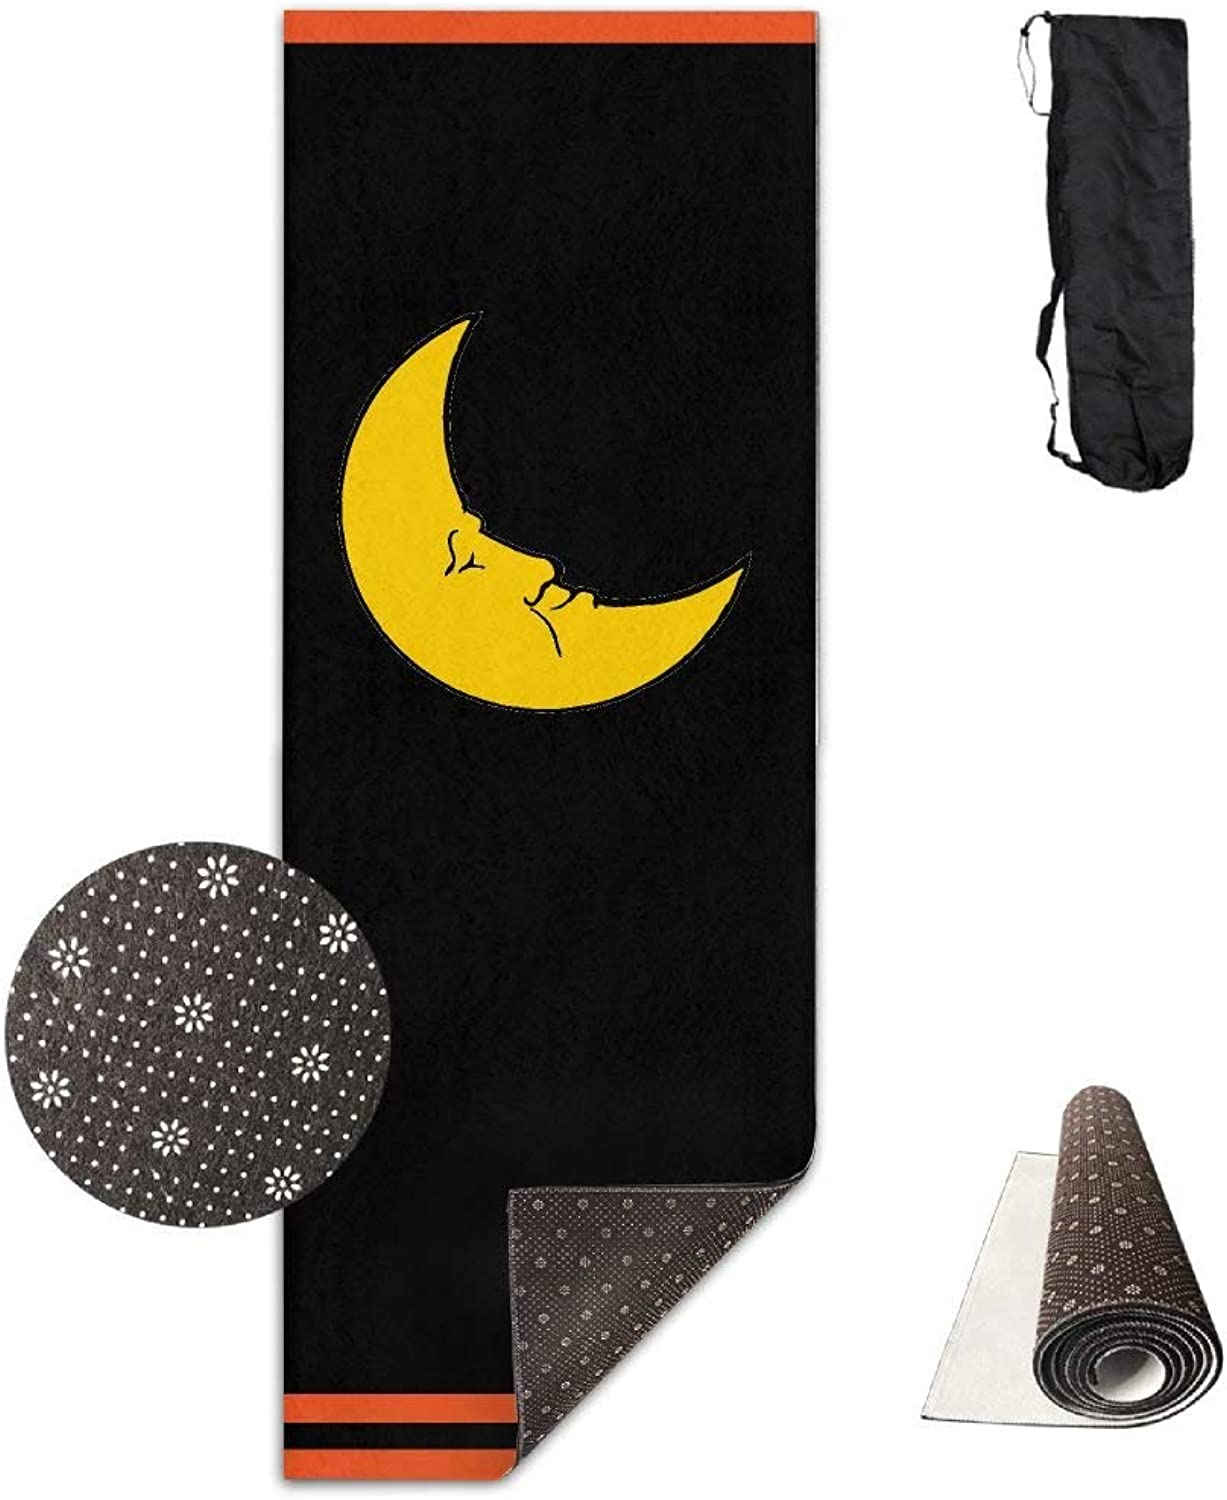 Moon Clip Art Deluxe Yoga Mat Aerobic Exercise Pilates